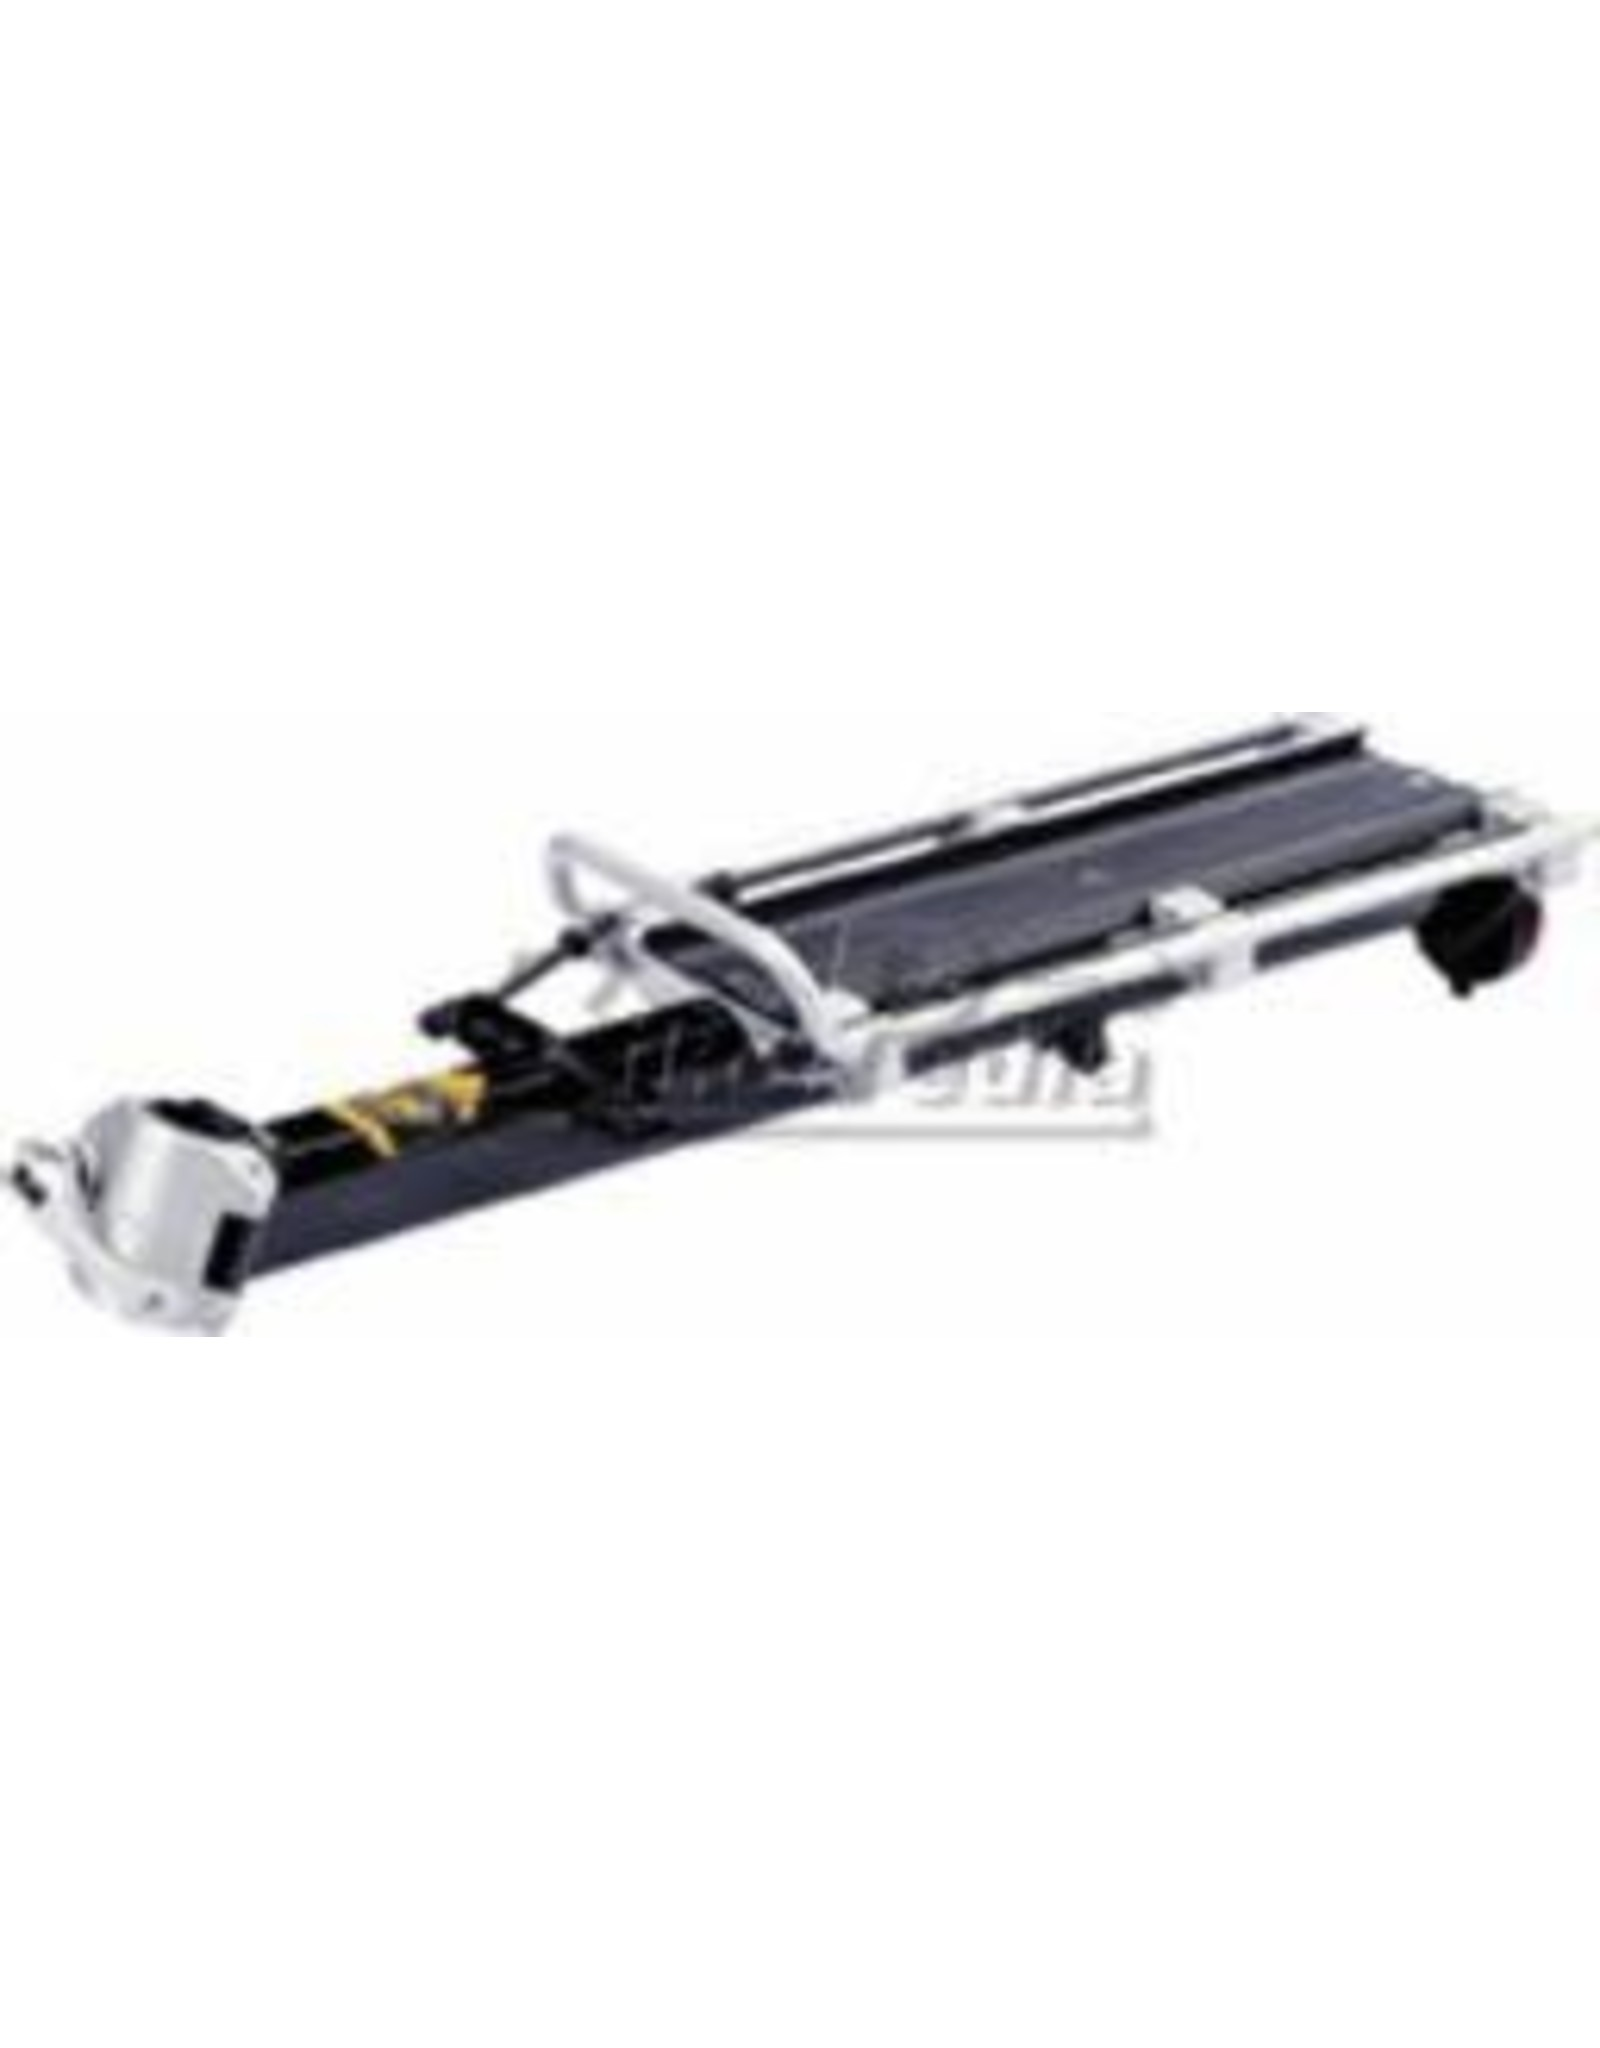 Topeak Topeak Rear Rack MTX BeamRack (E-Type) - 20 Ibs Max, Disc Compatible, Fits Up To 31.8mm Seatpost